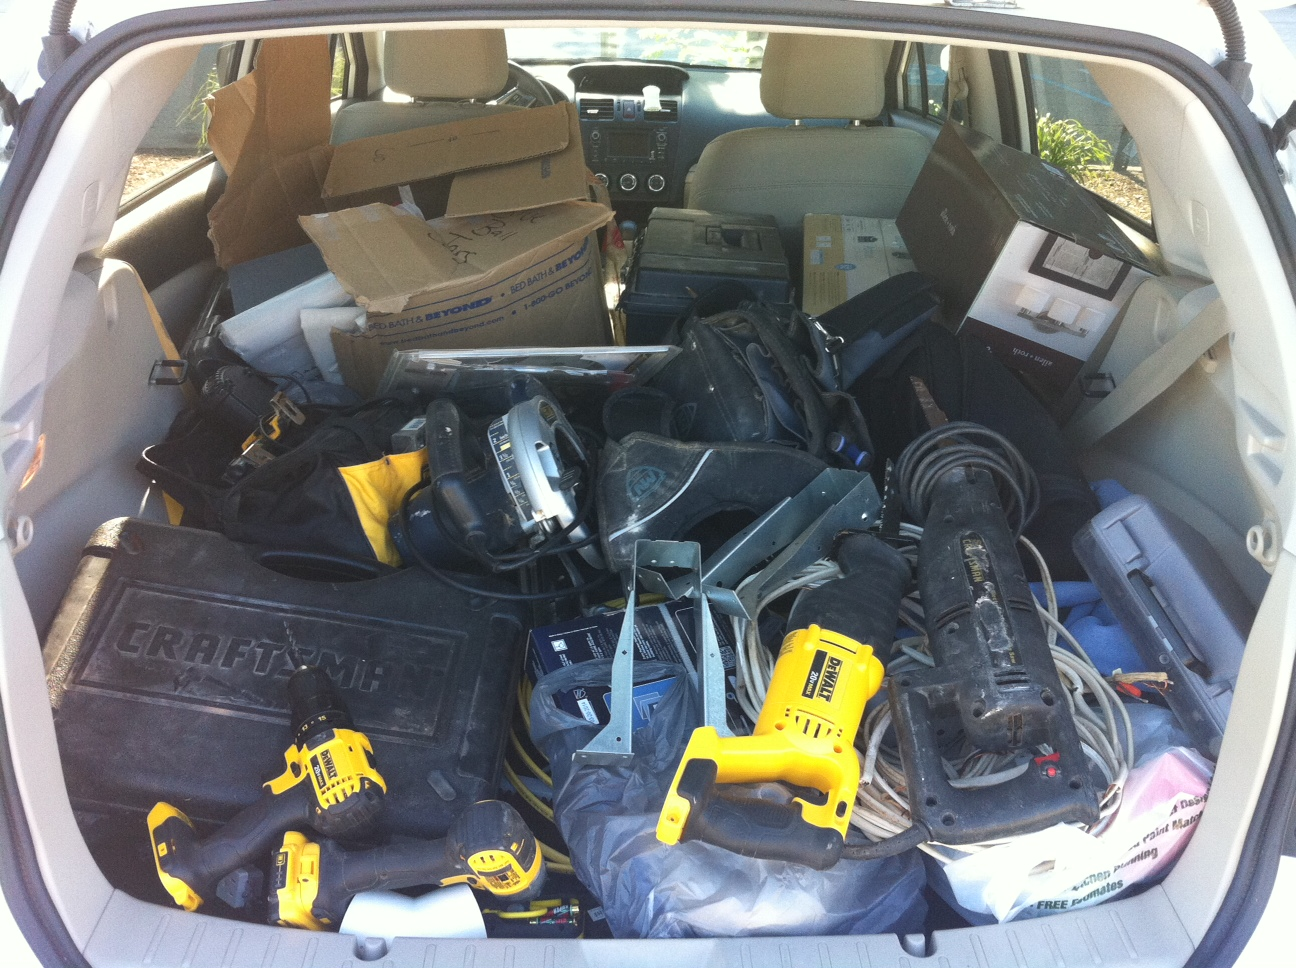 All the tools loaded up in my car. A way to show the city we are obeying.